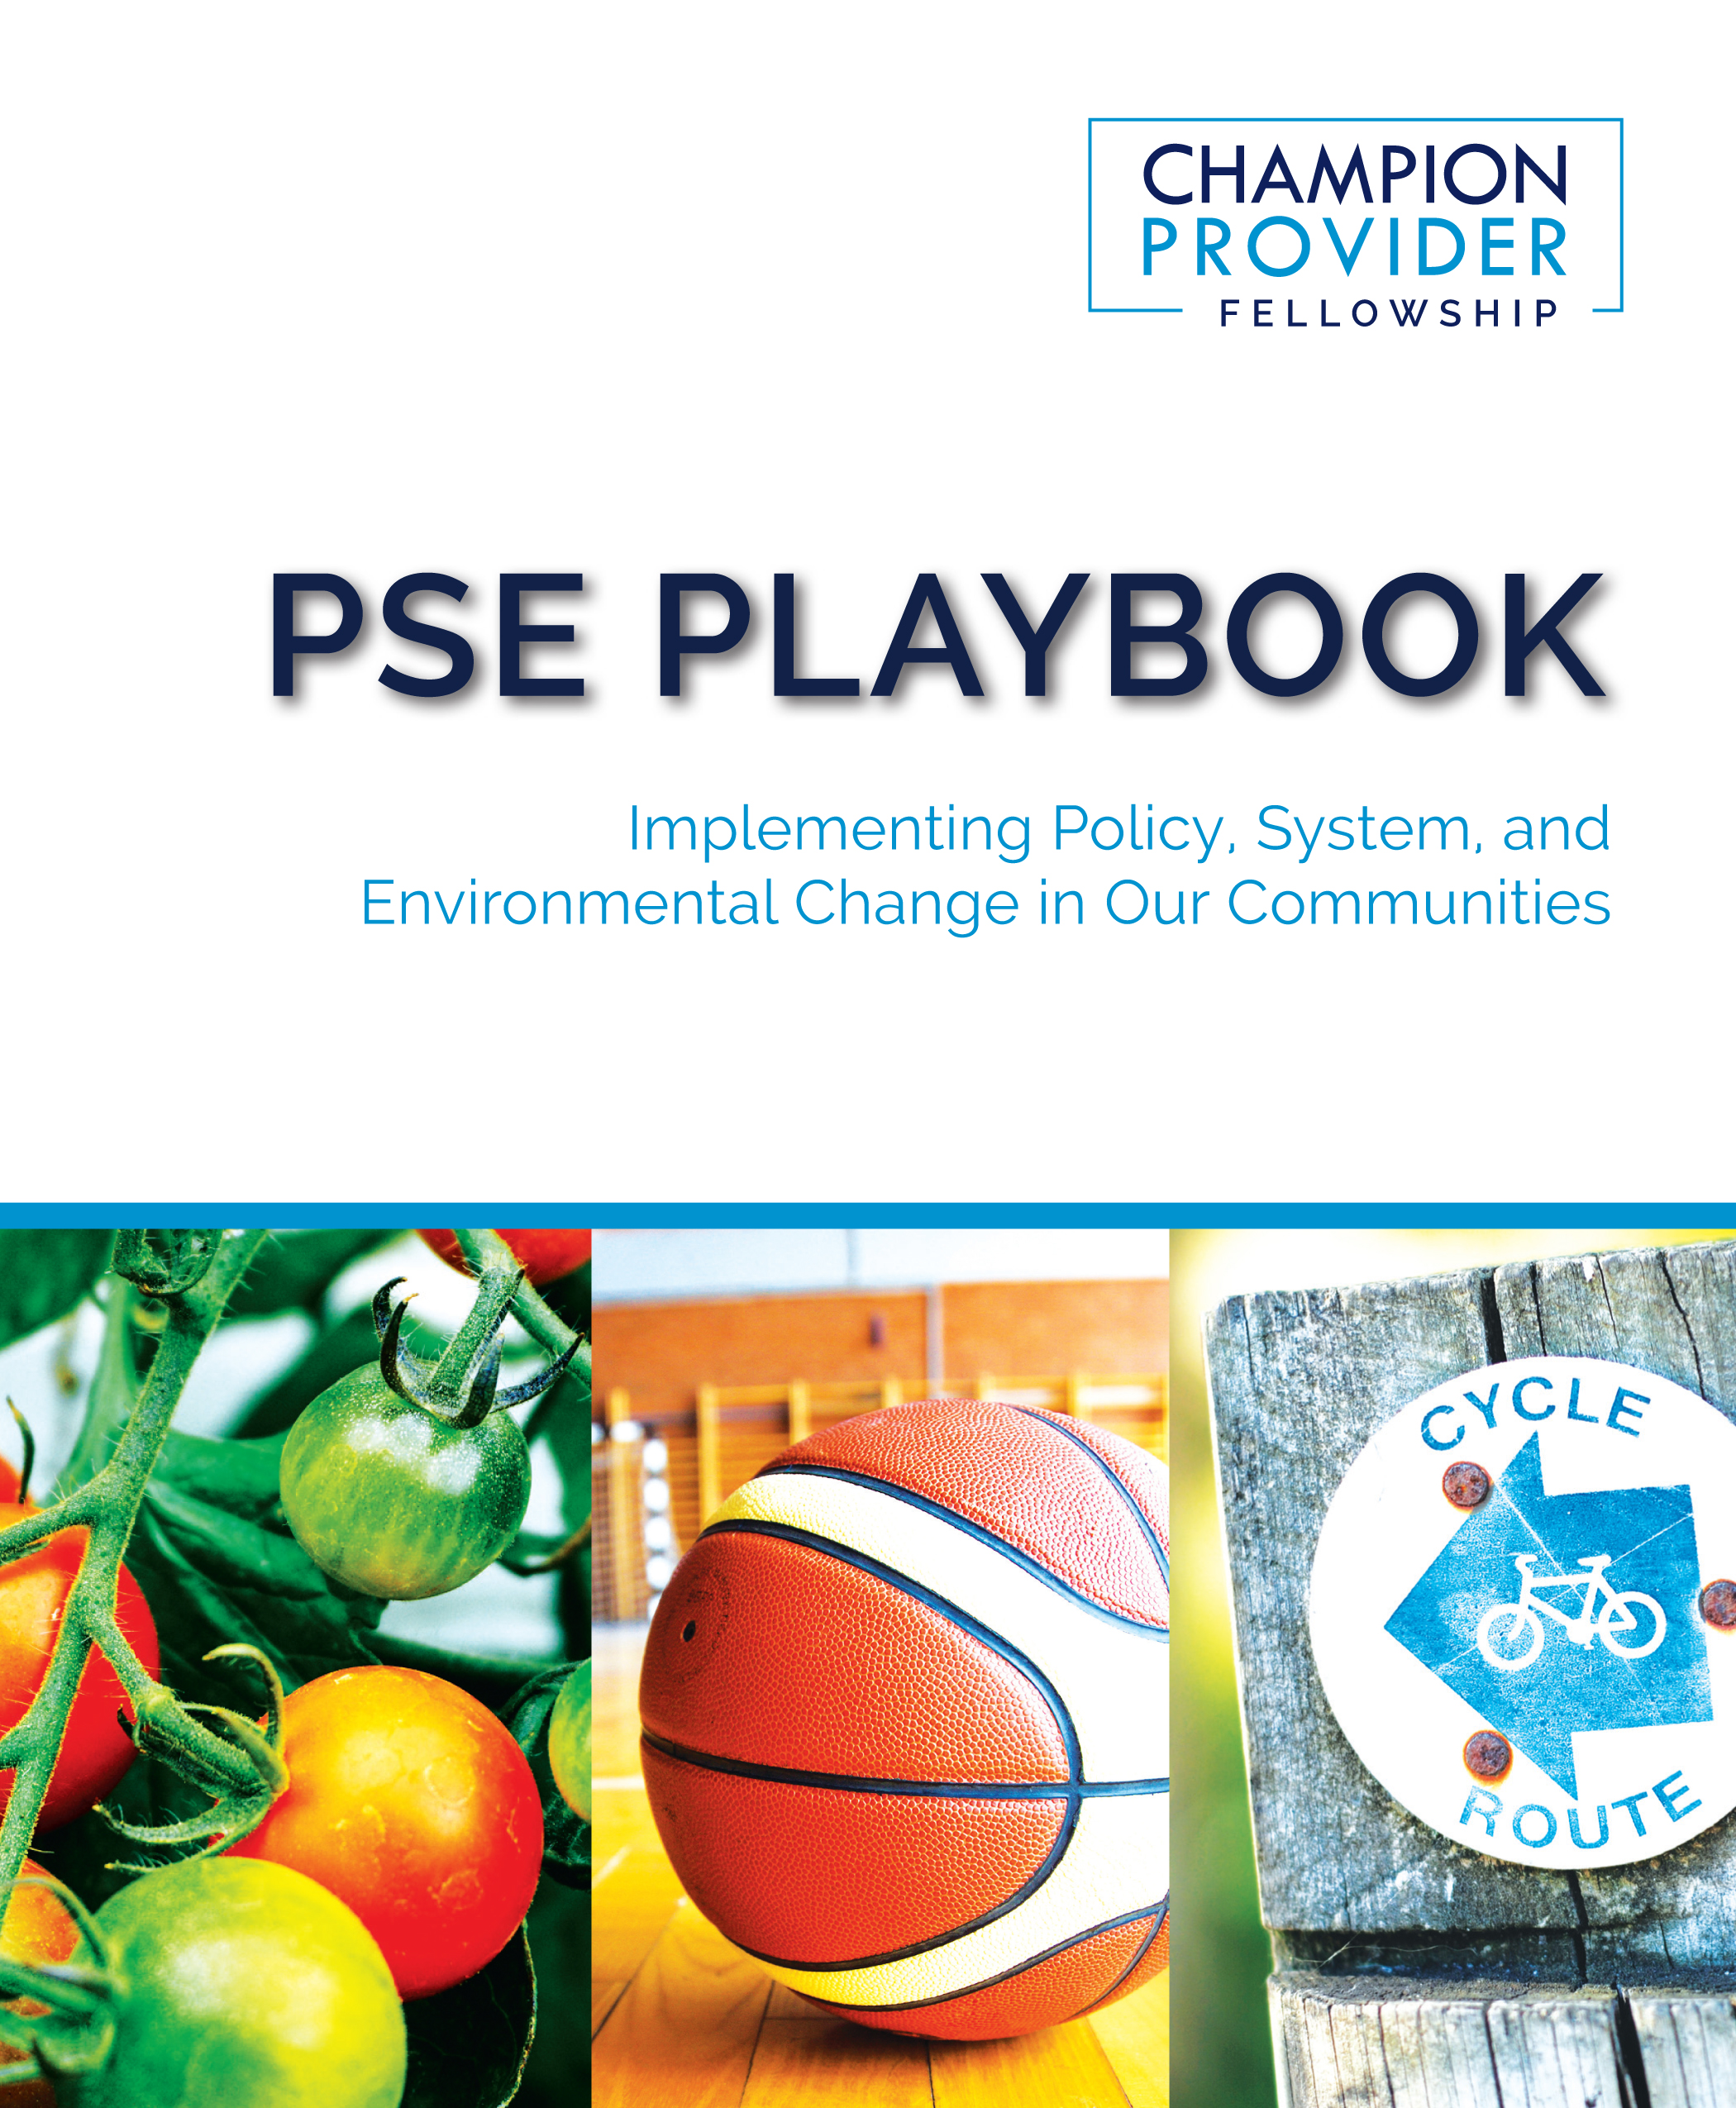 PSE Playbook